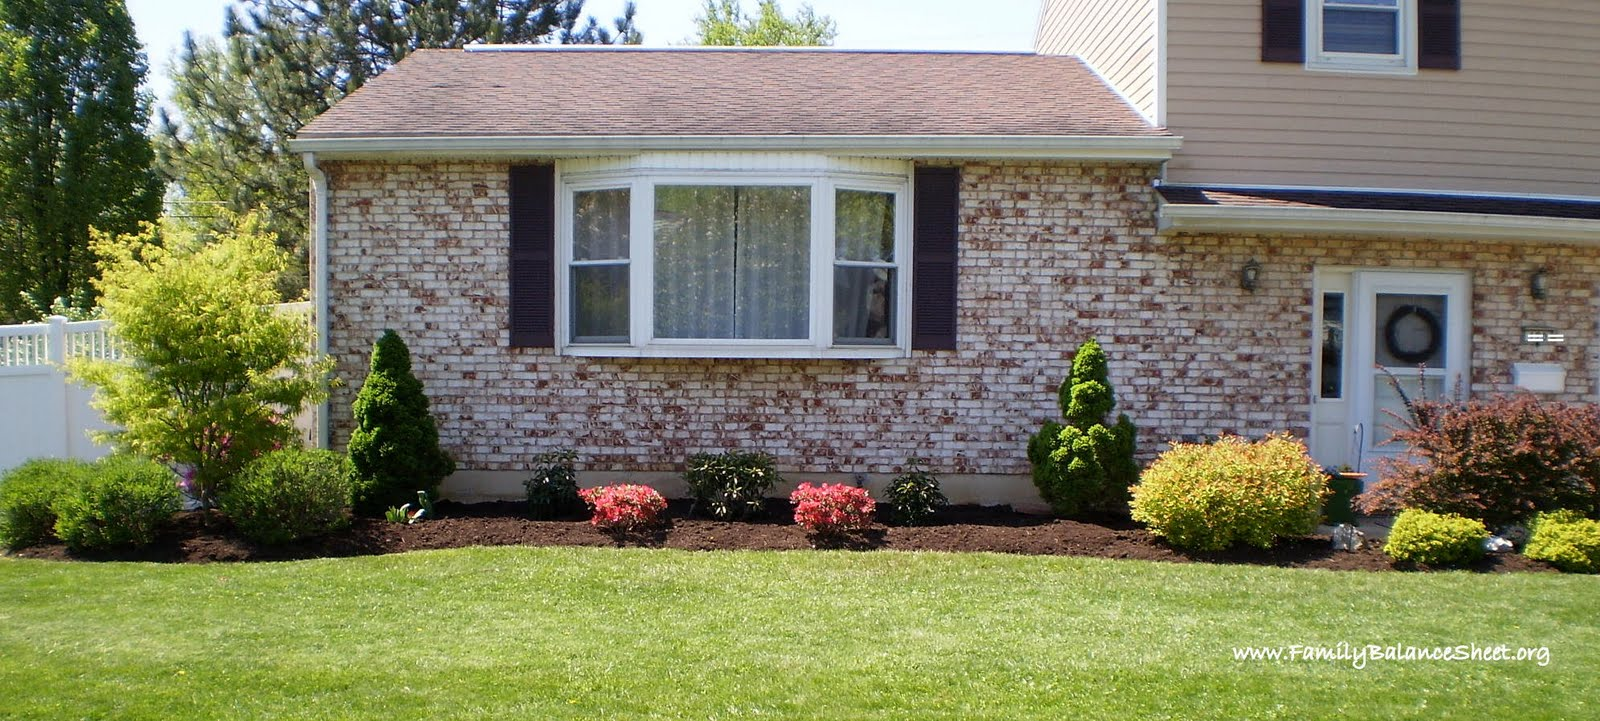 15 tips to help you design your front yard save money too for Home front landscape design